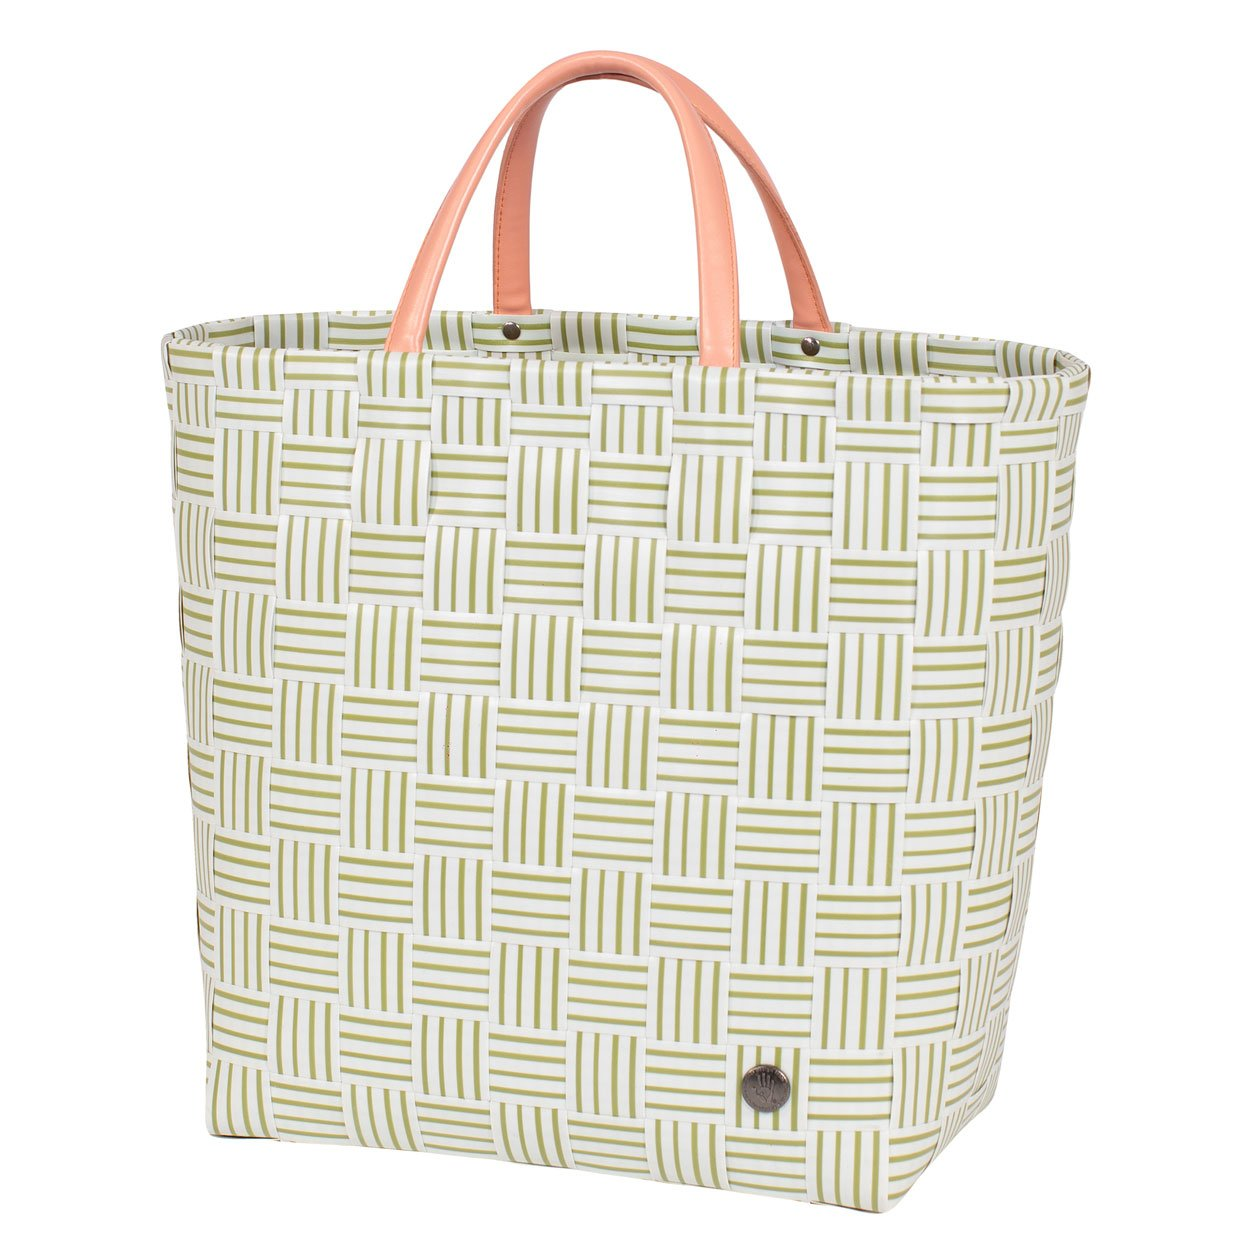 Recycled Tote Joy